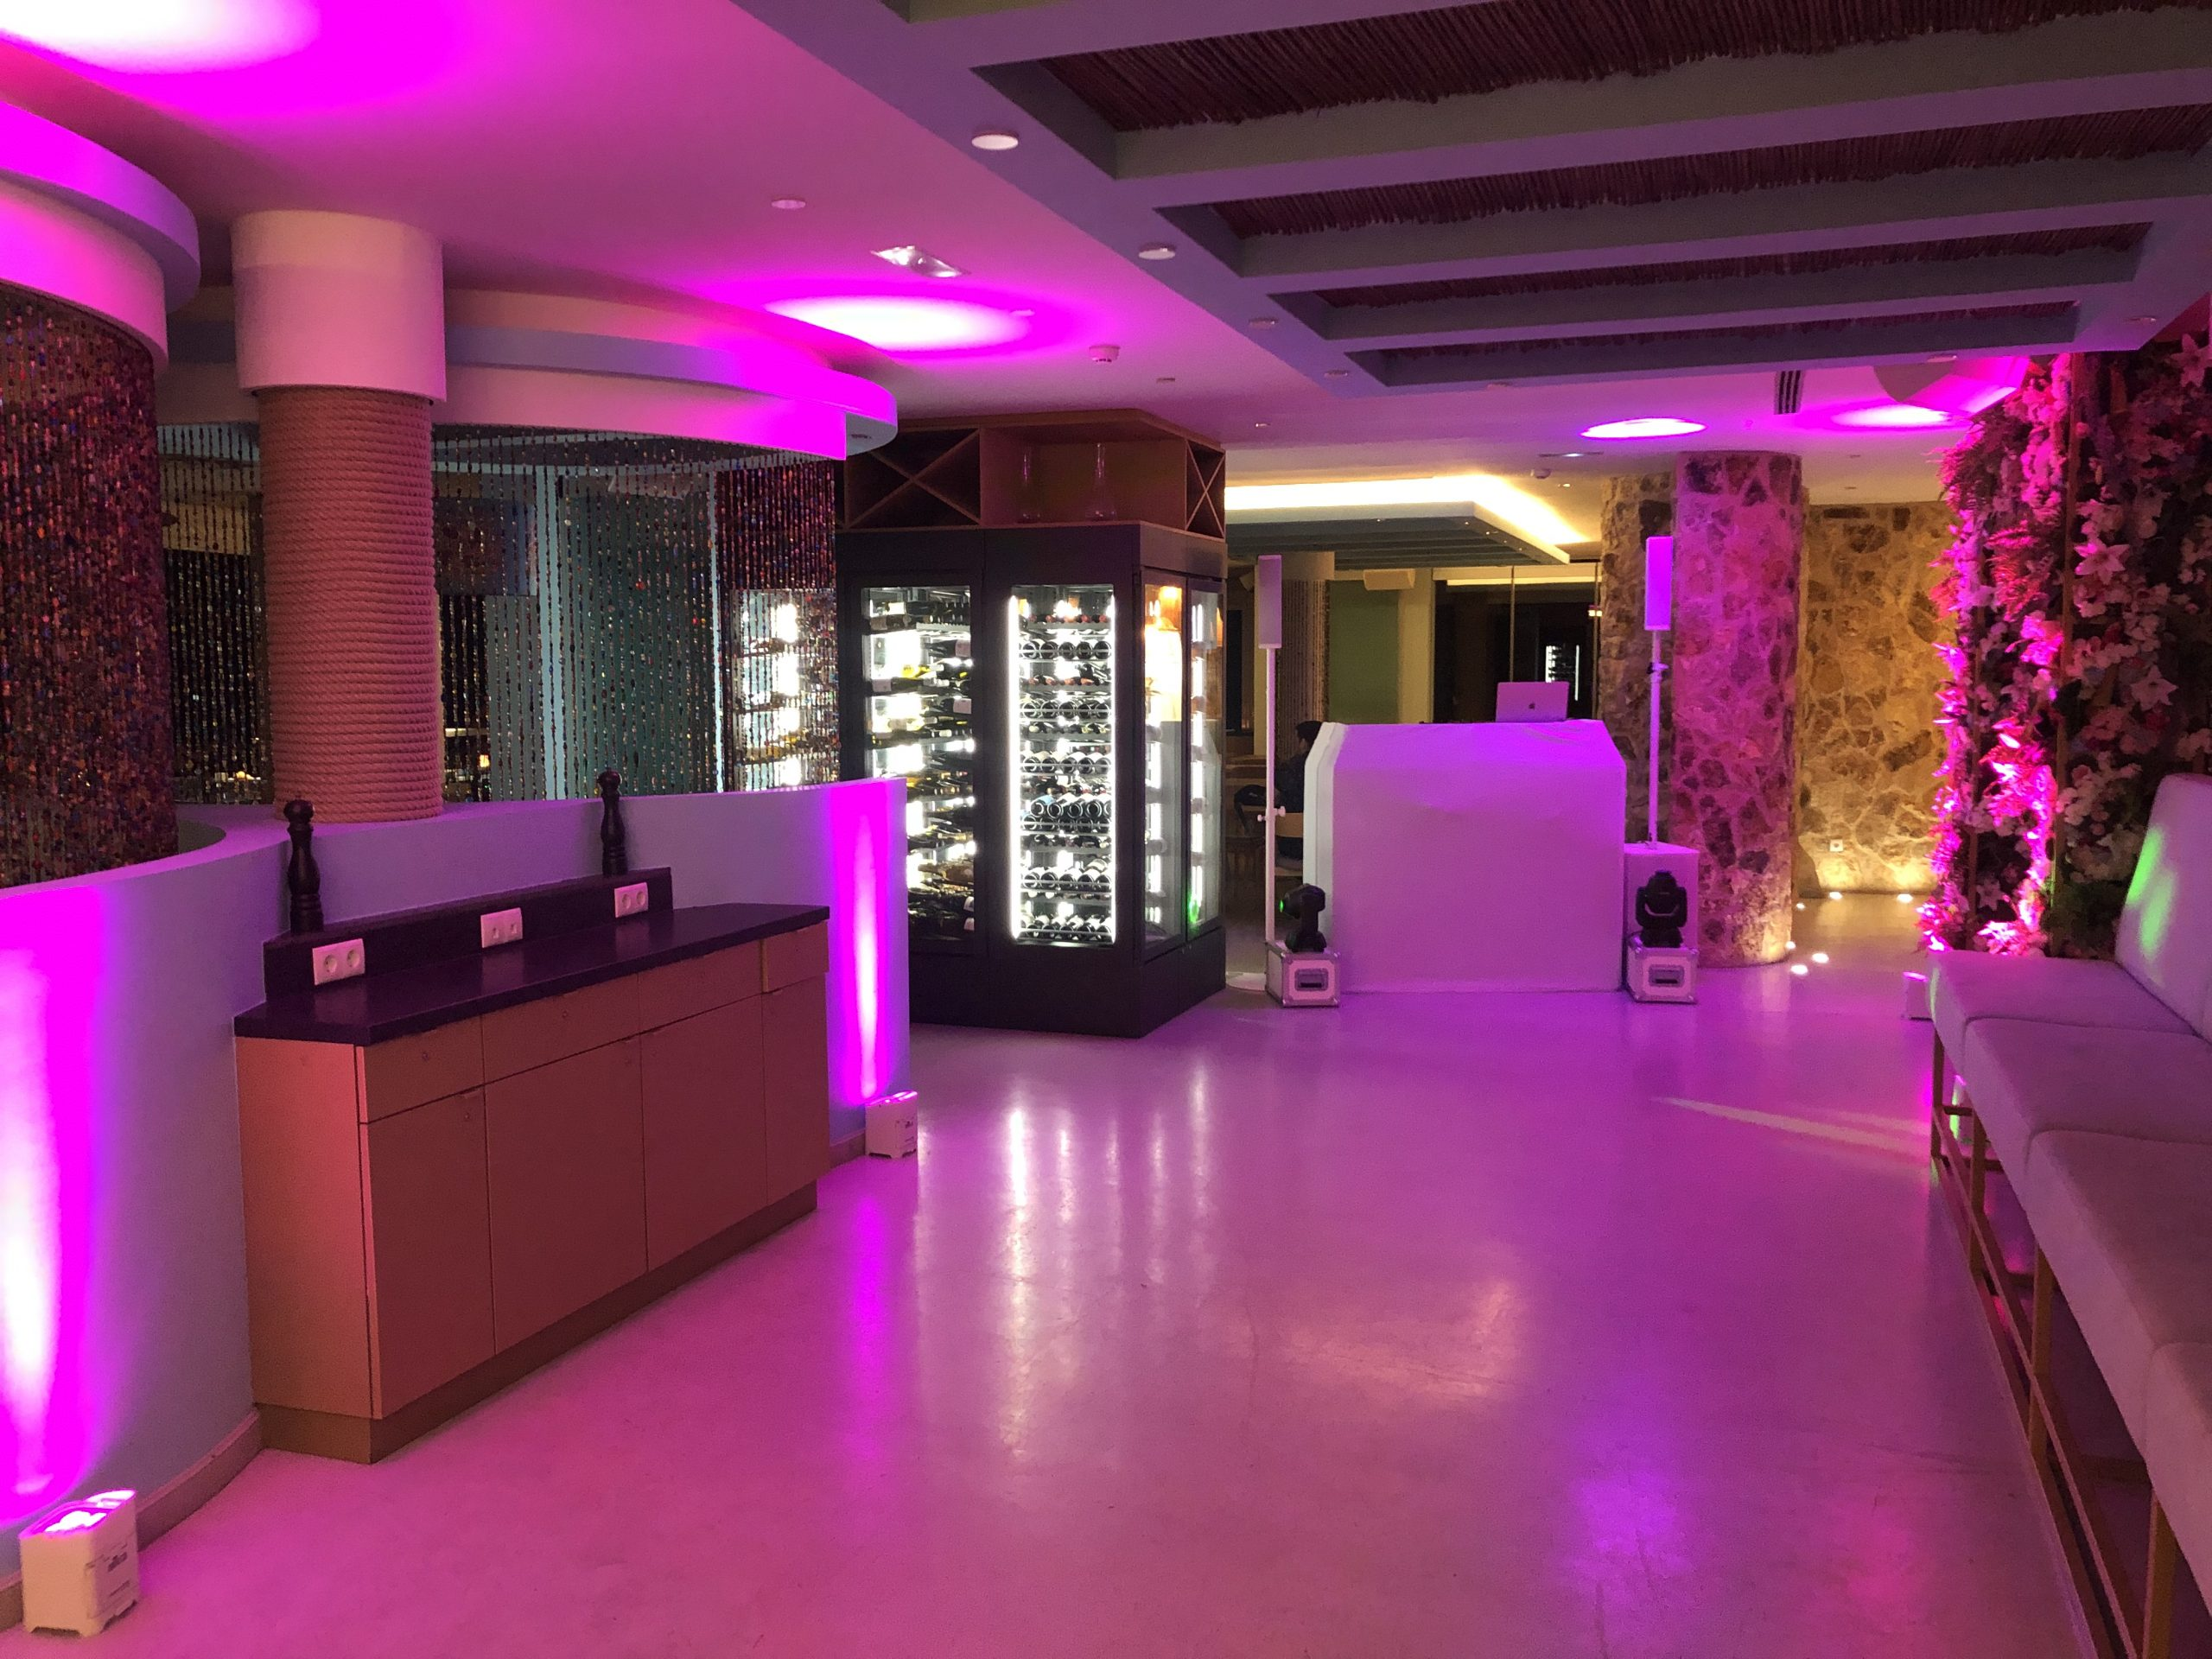 Ibiza wedding speaker and sound system hire for weddings at 7pines.